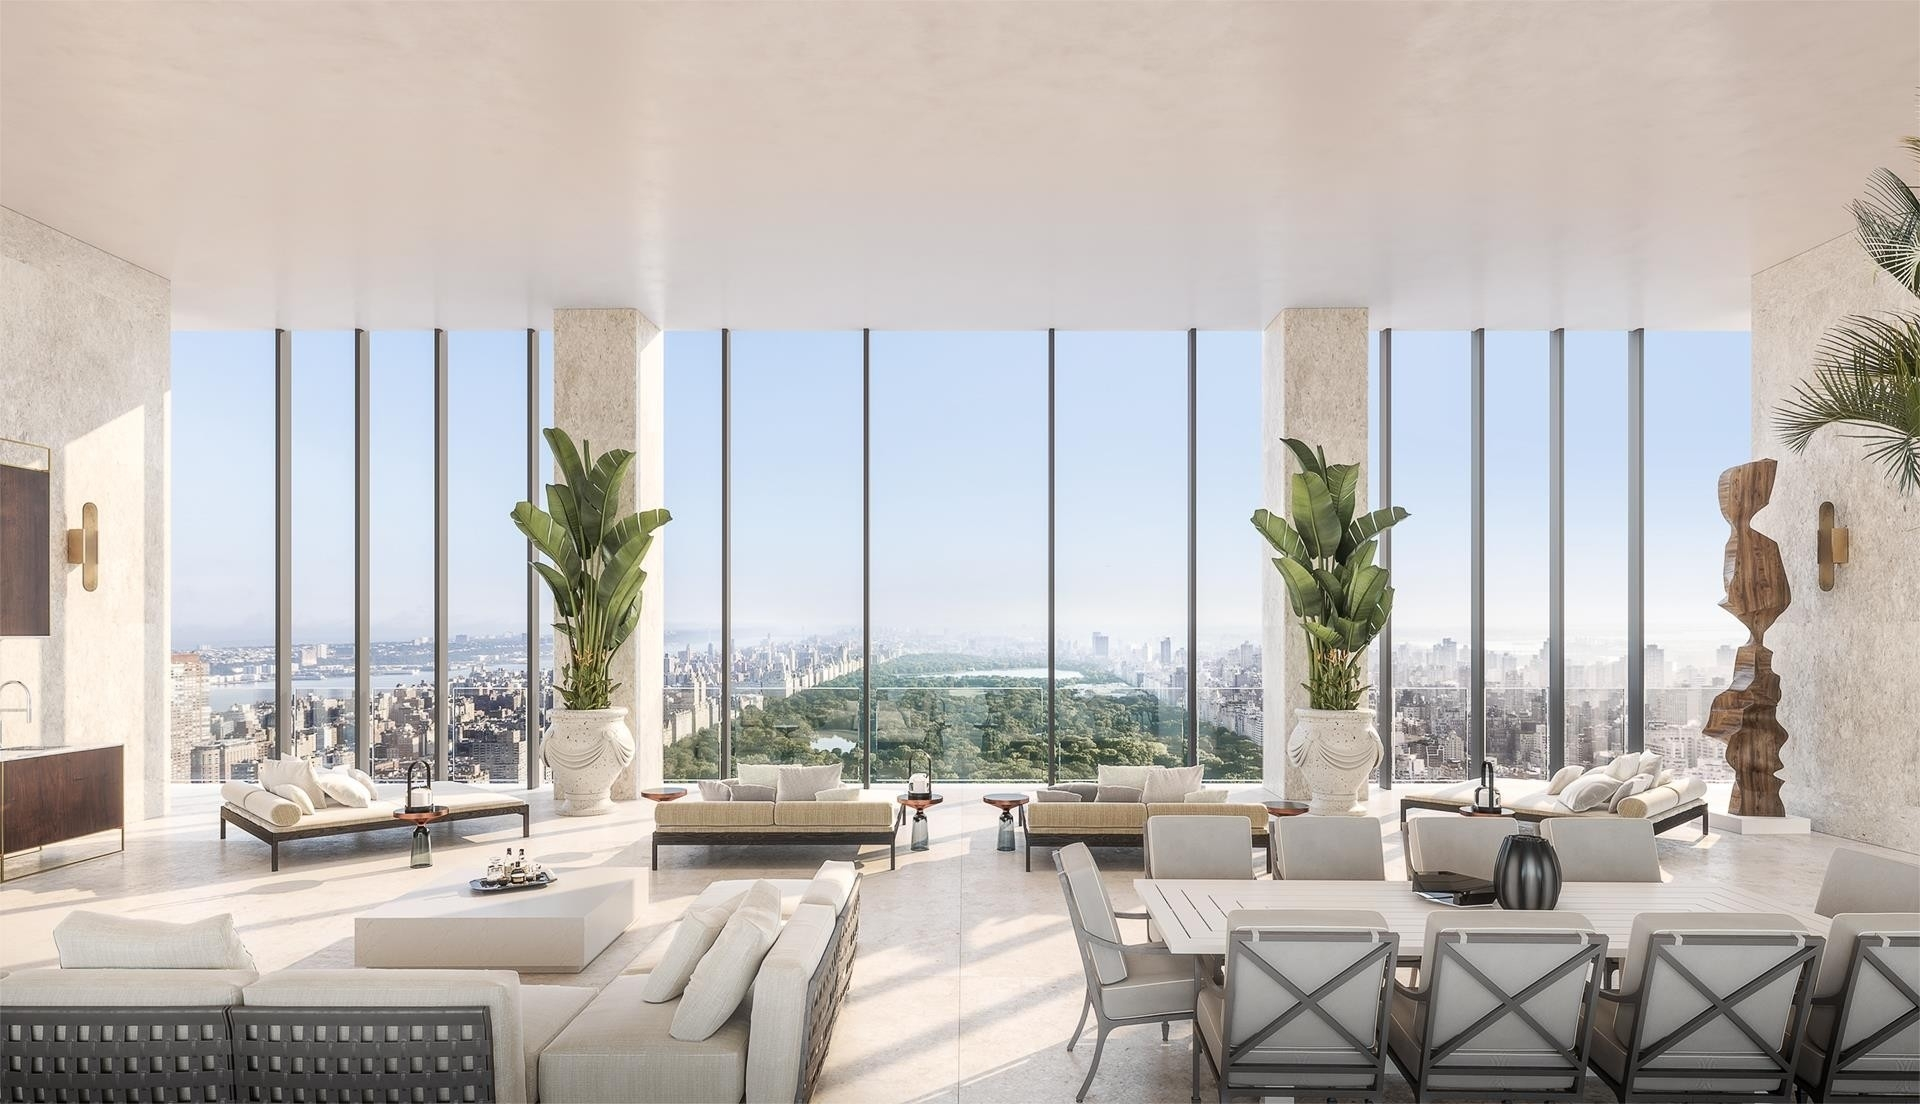 Property at 111 W 57TH ST , PH72 Midtown West, New York, NY 10019